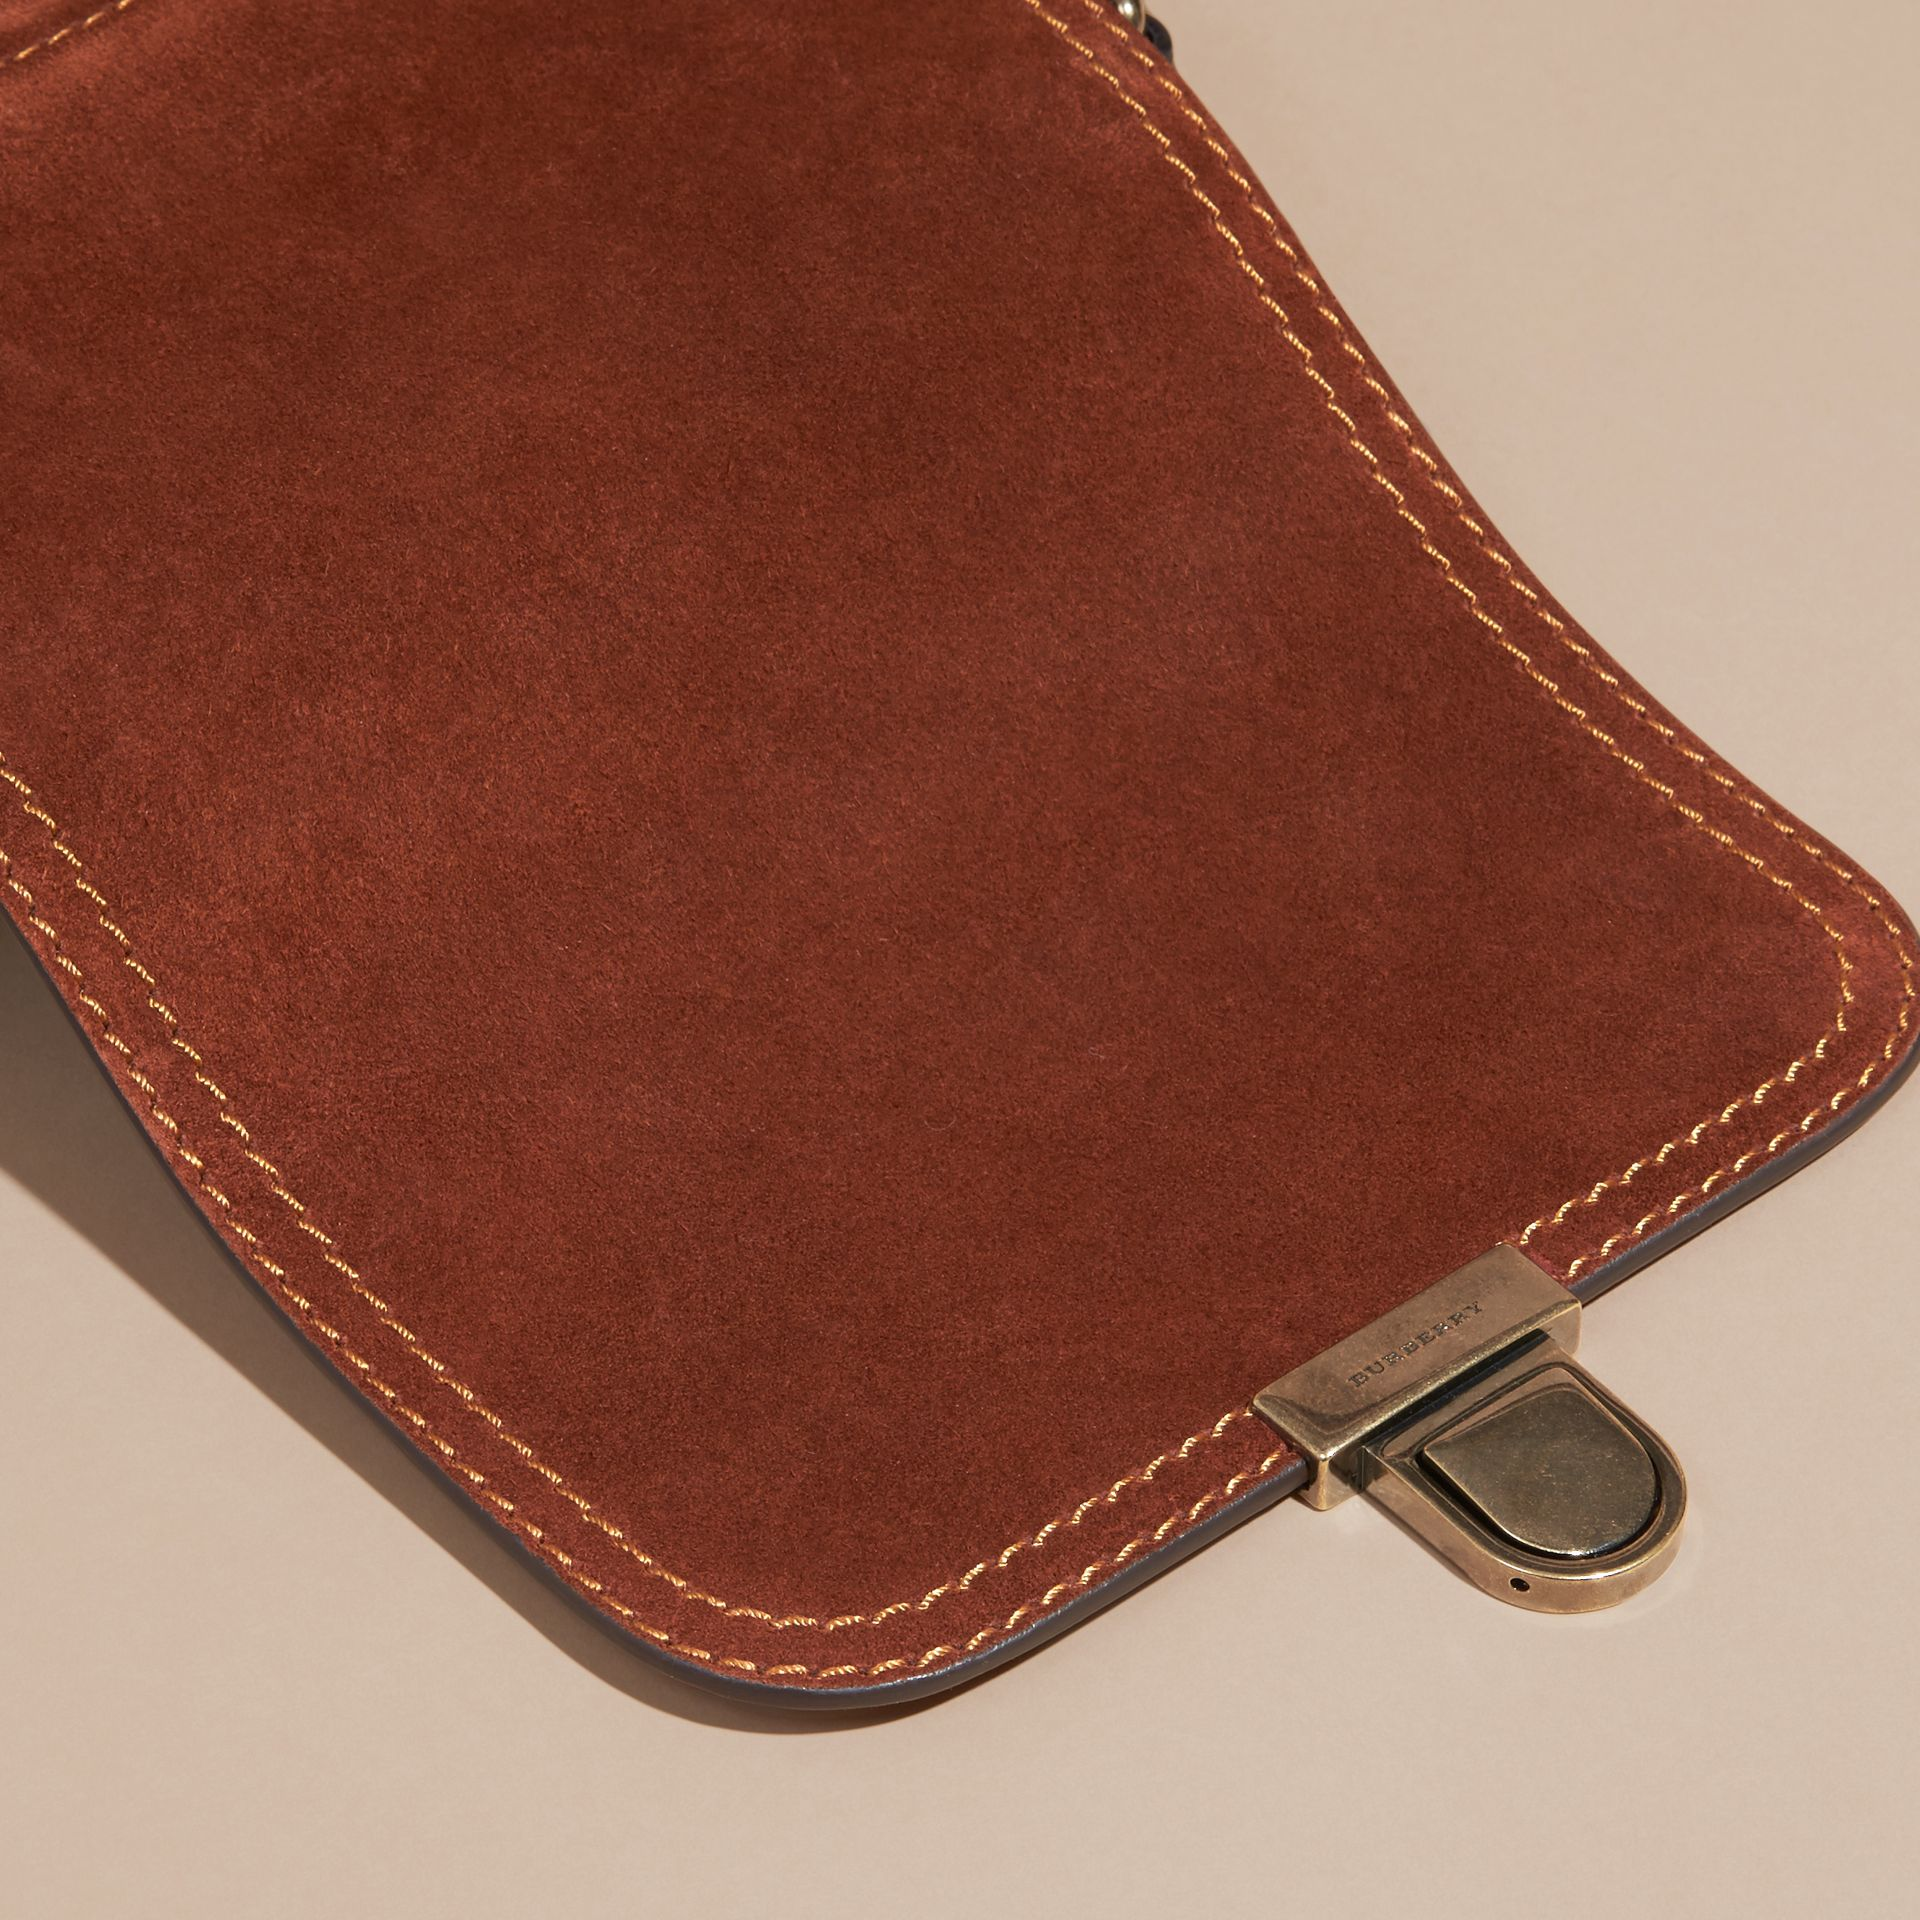 Russet brown The Small Satchel in English Suede and House Check Russet Brown - gallery image 2